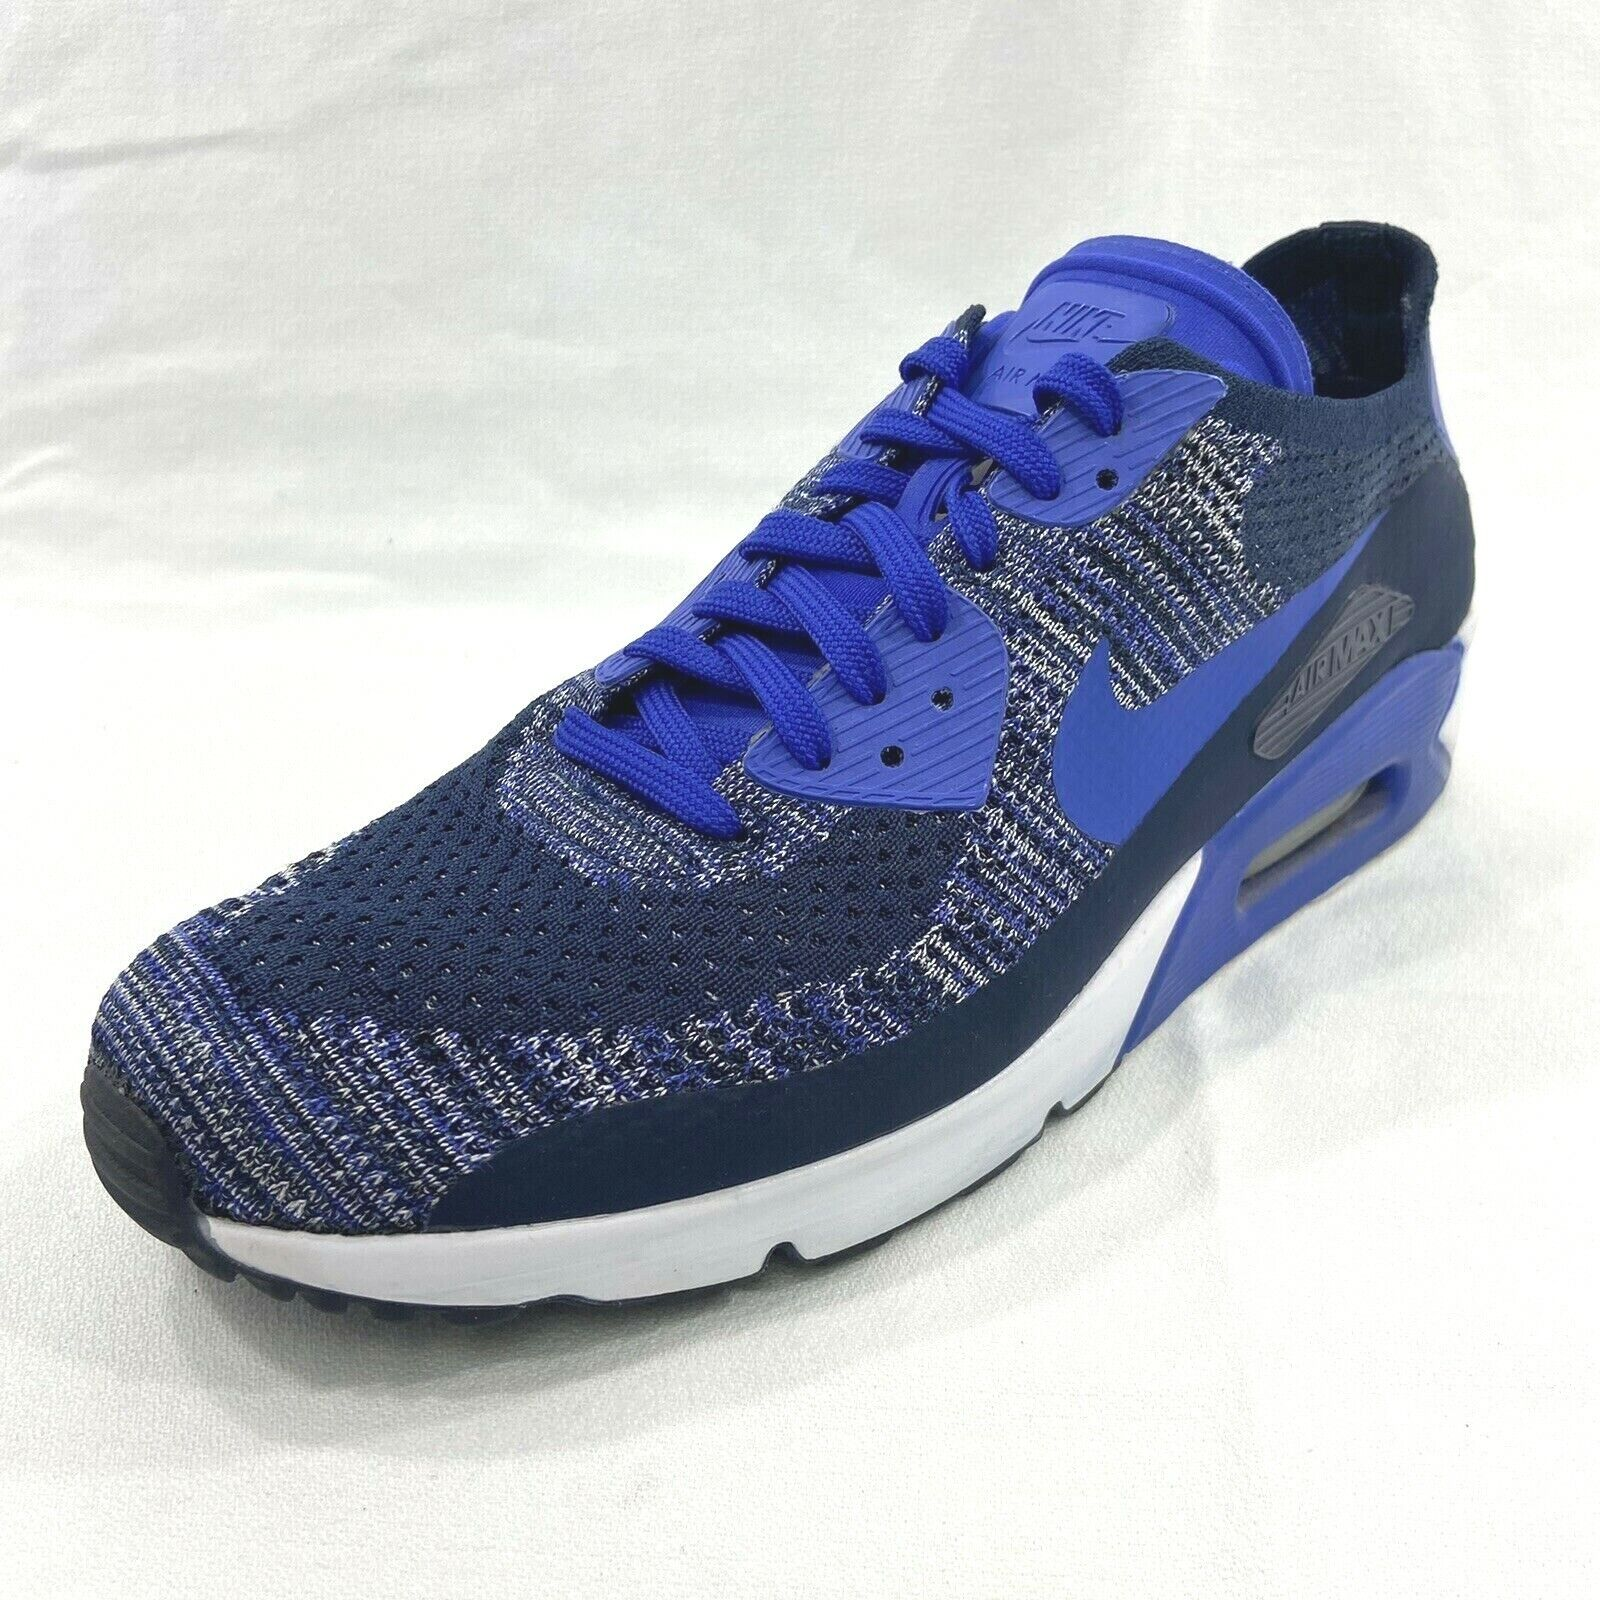 Size 11 - Nike Air Max 90 Ultra 2.0 Flyknit Collegiate Navy 2017